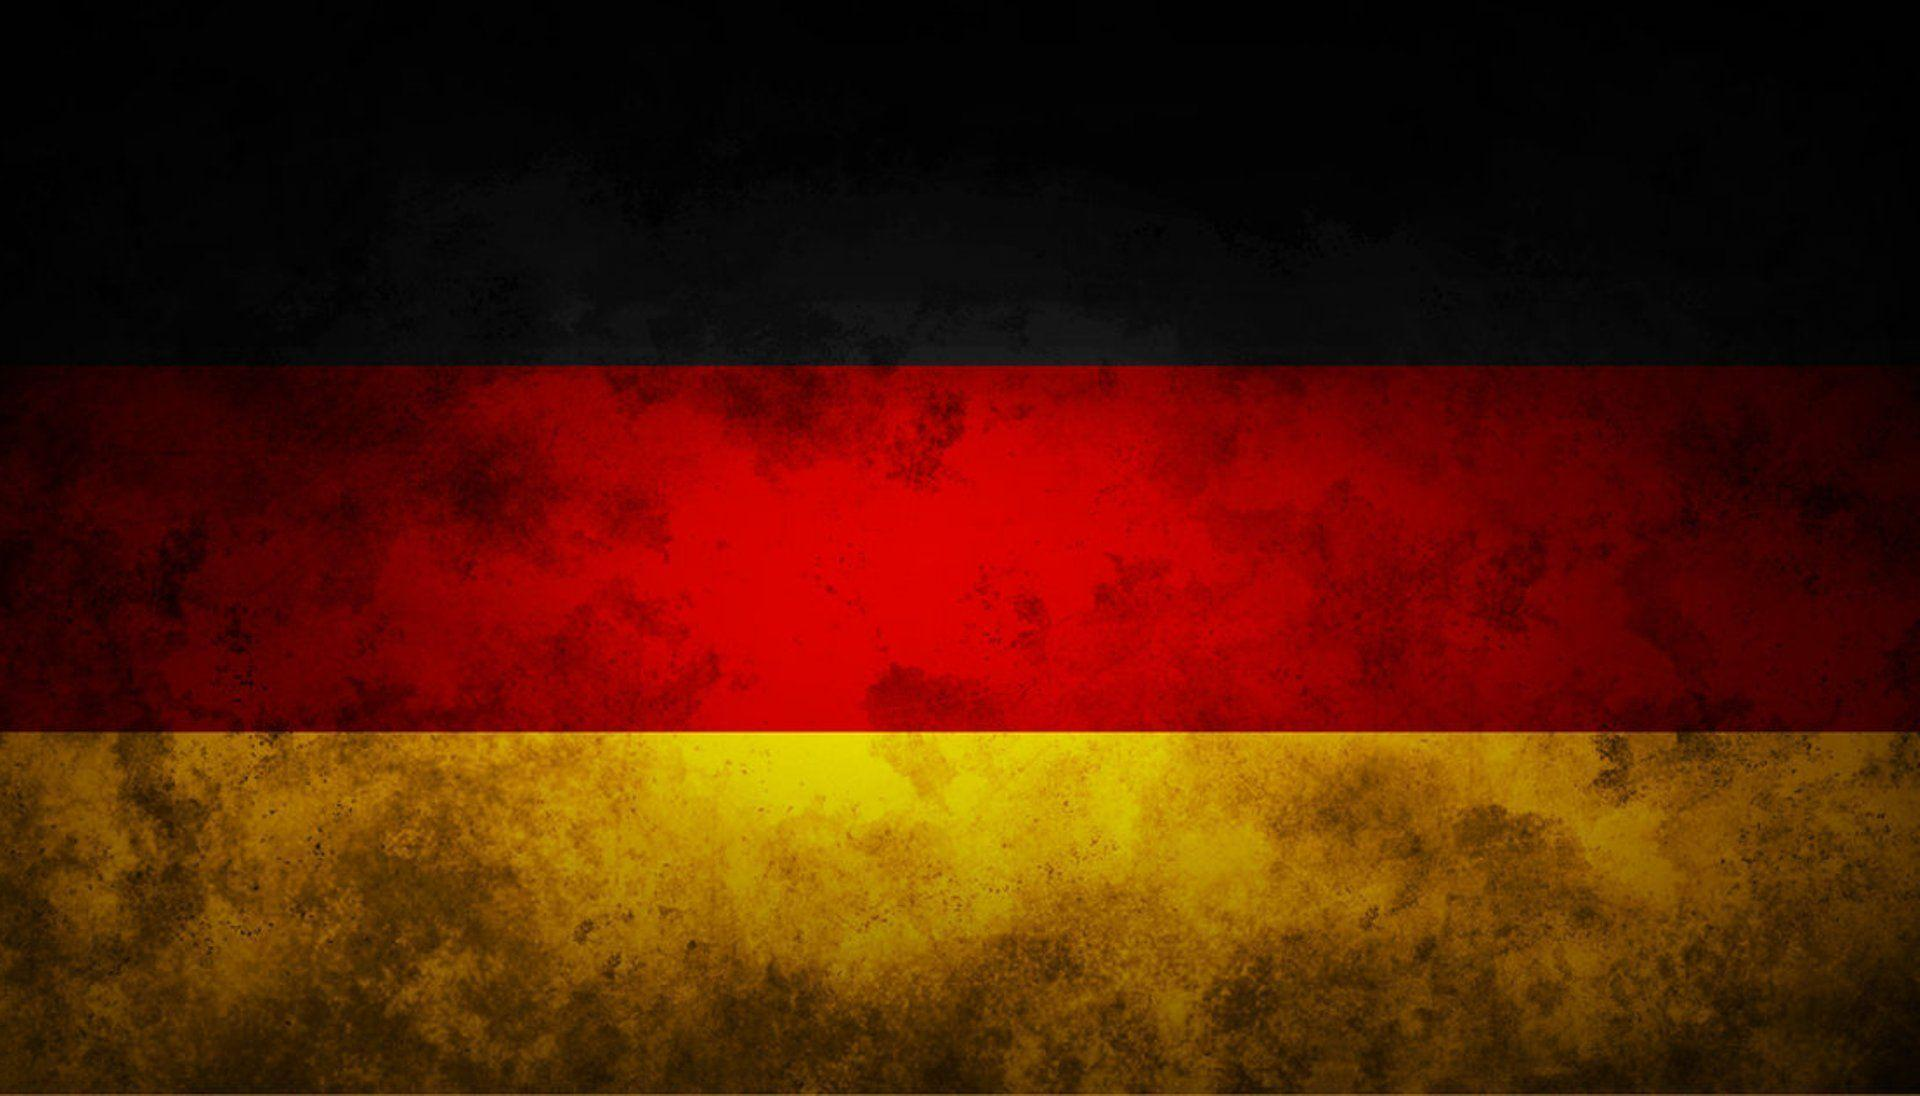 deutschland flag wallpaper - photo #7